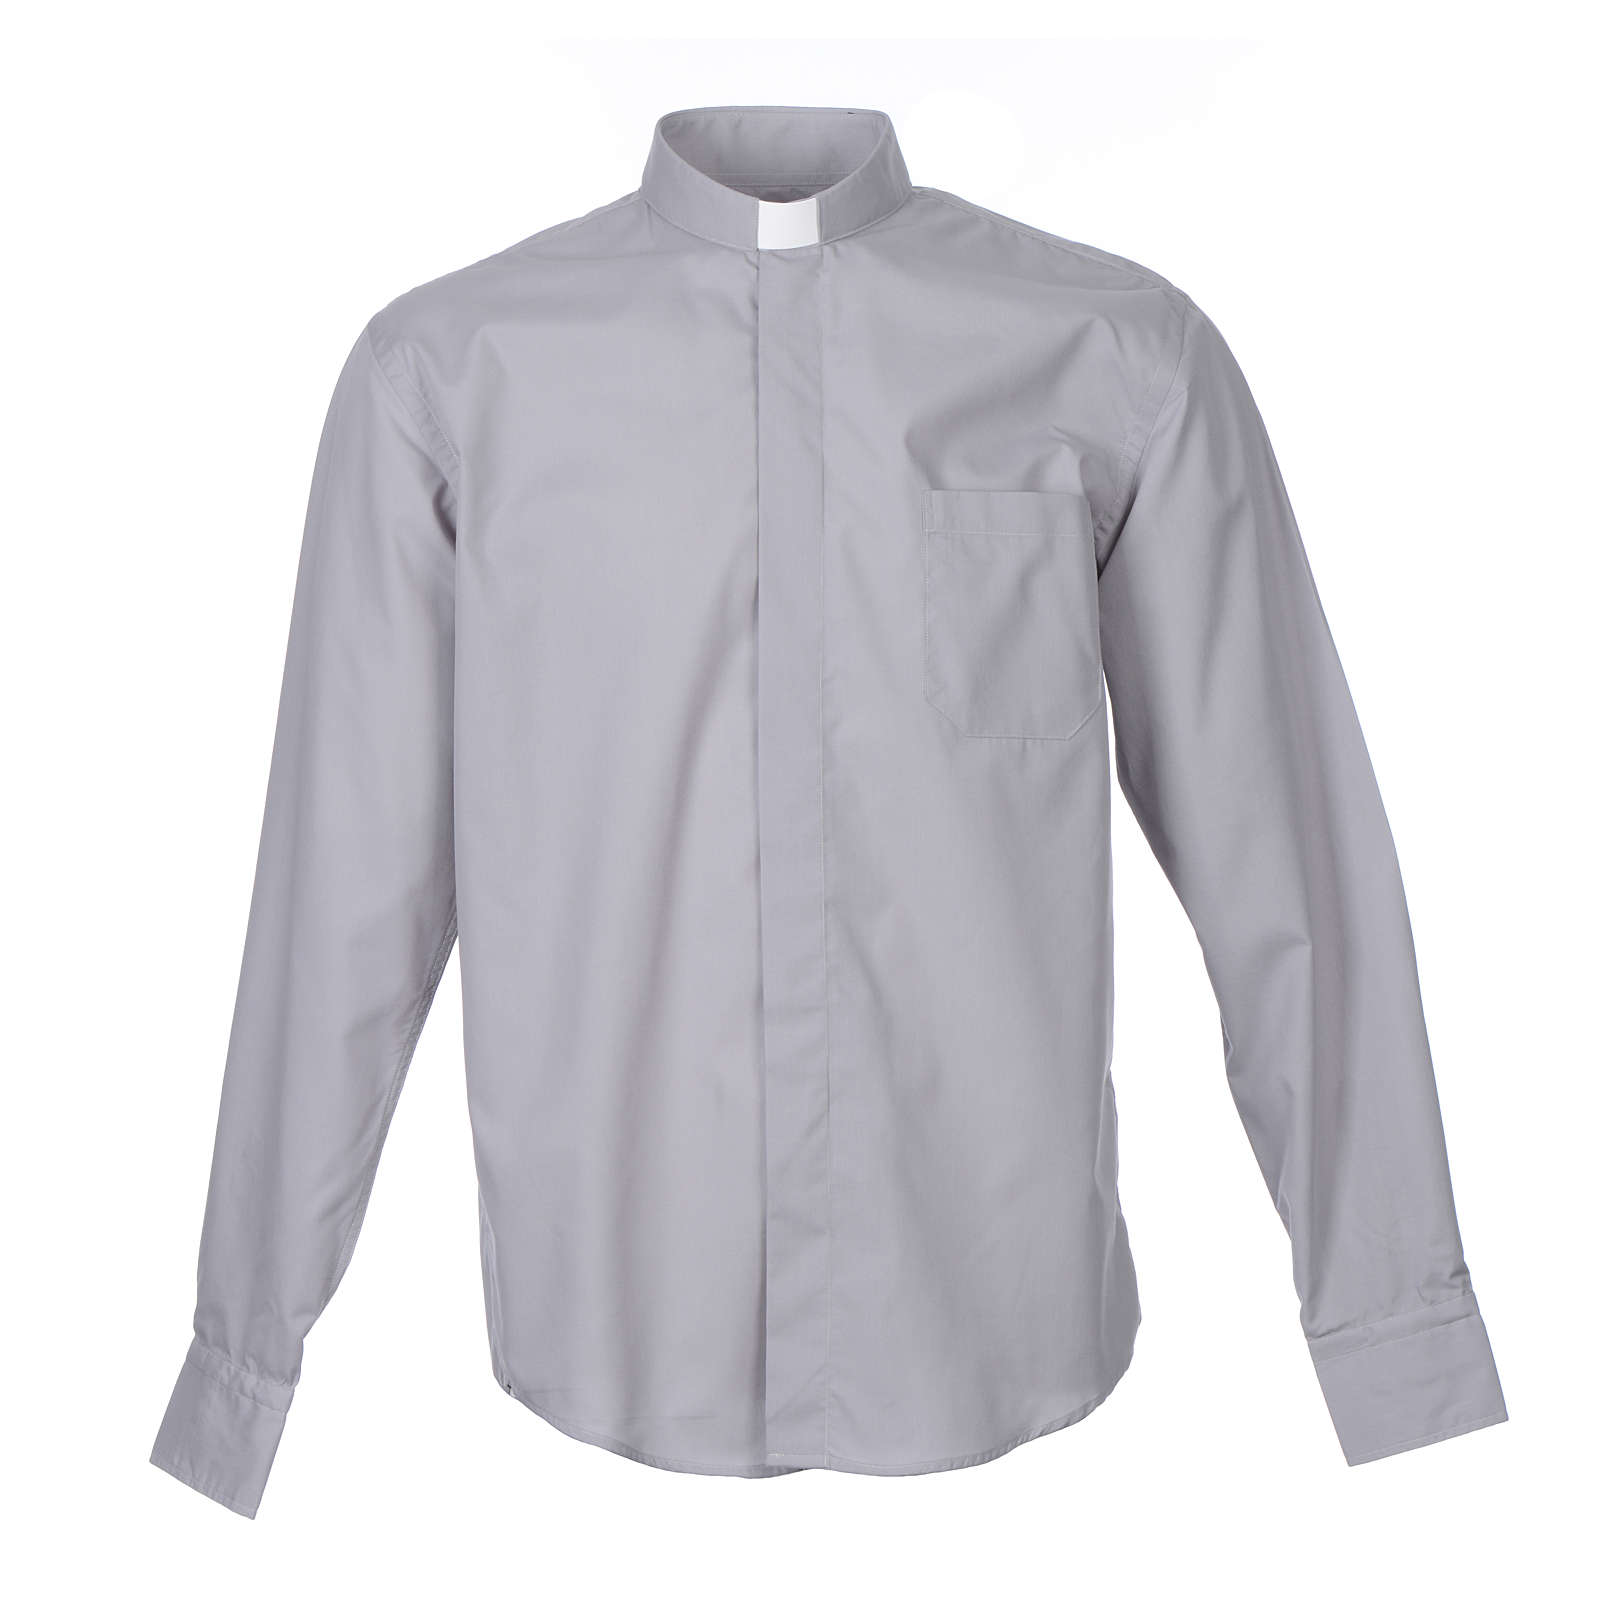 Tab Collar Light Grey Shirt long sleeve solid color mixed cotton 4